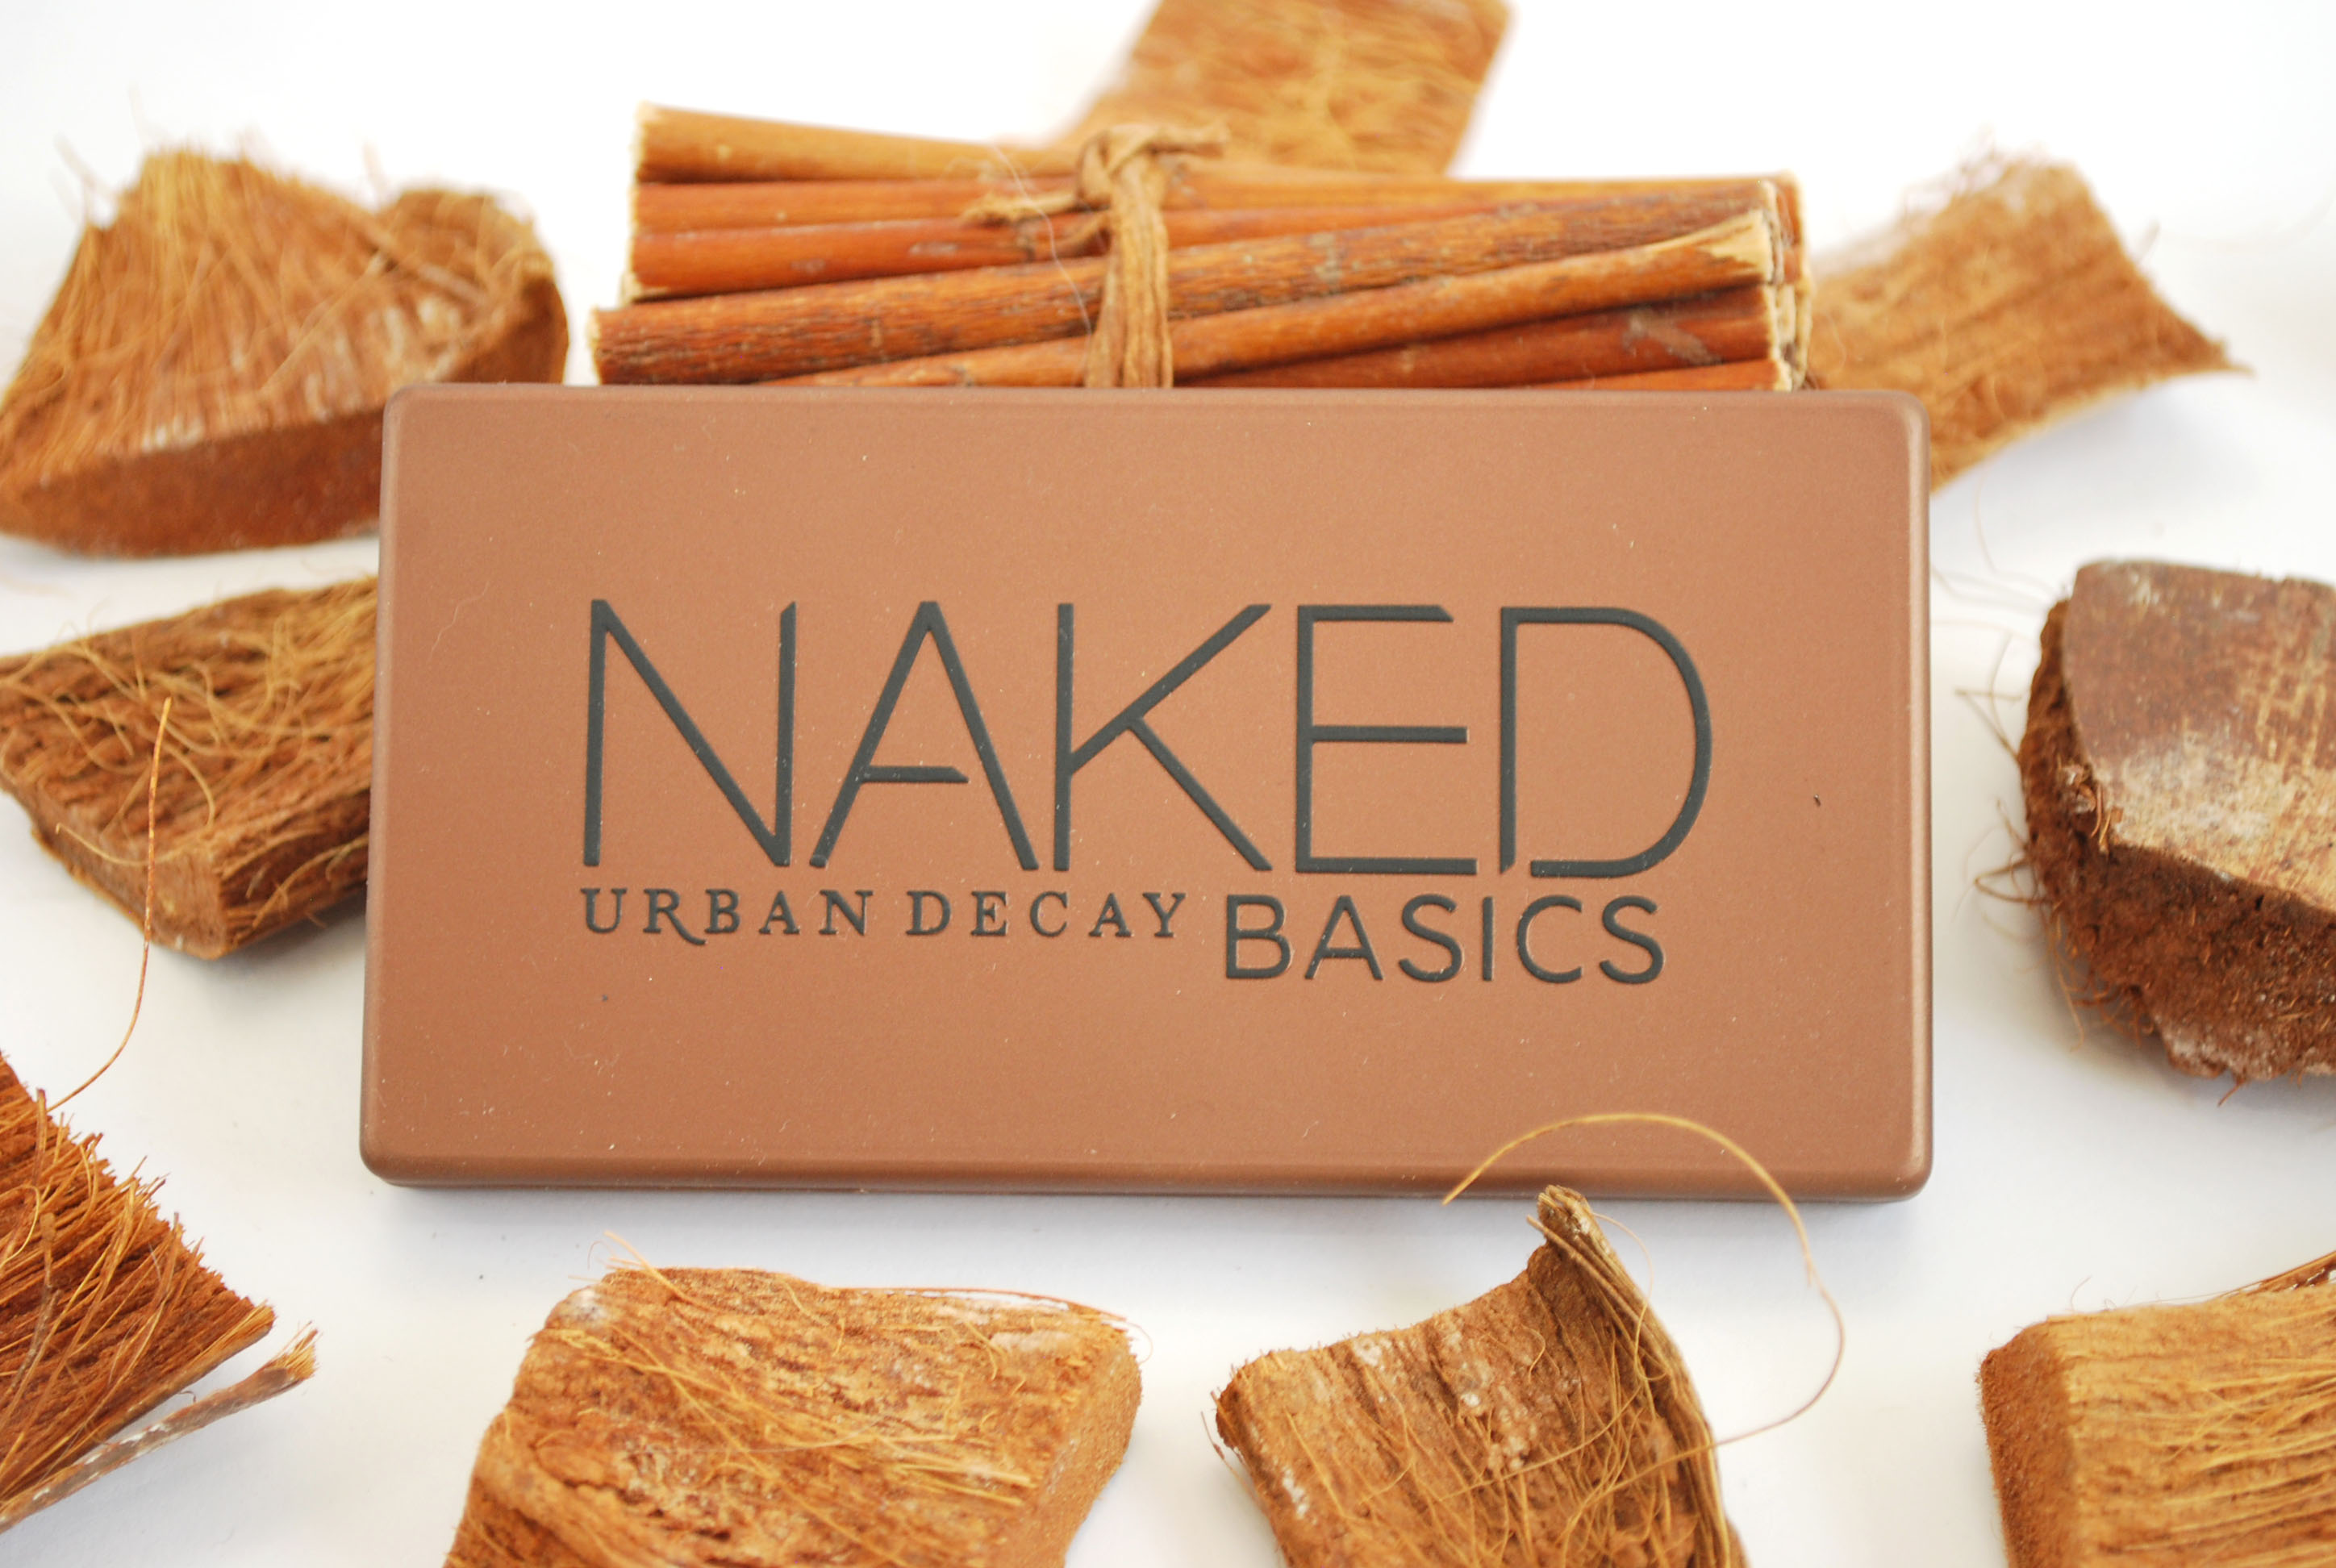 Naked Basis ebay dupe Urban Decay